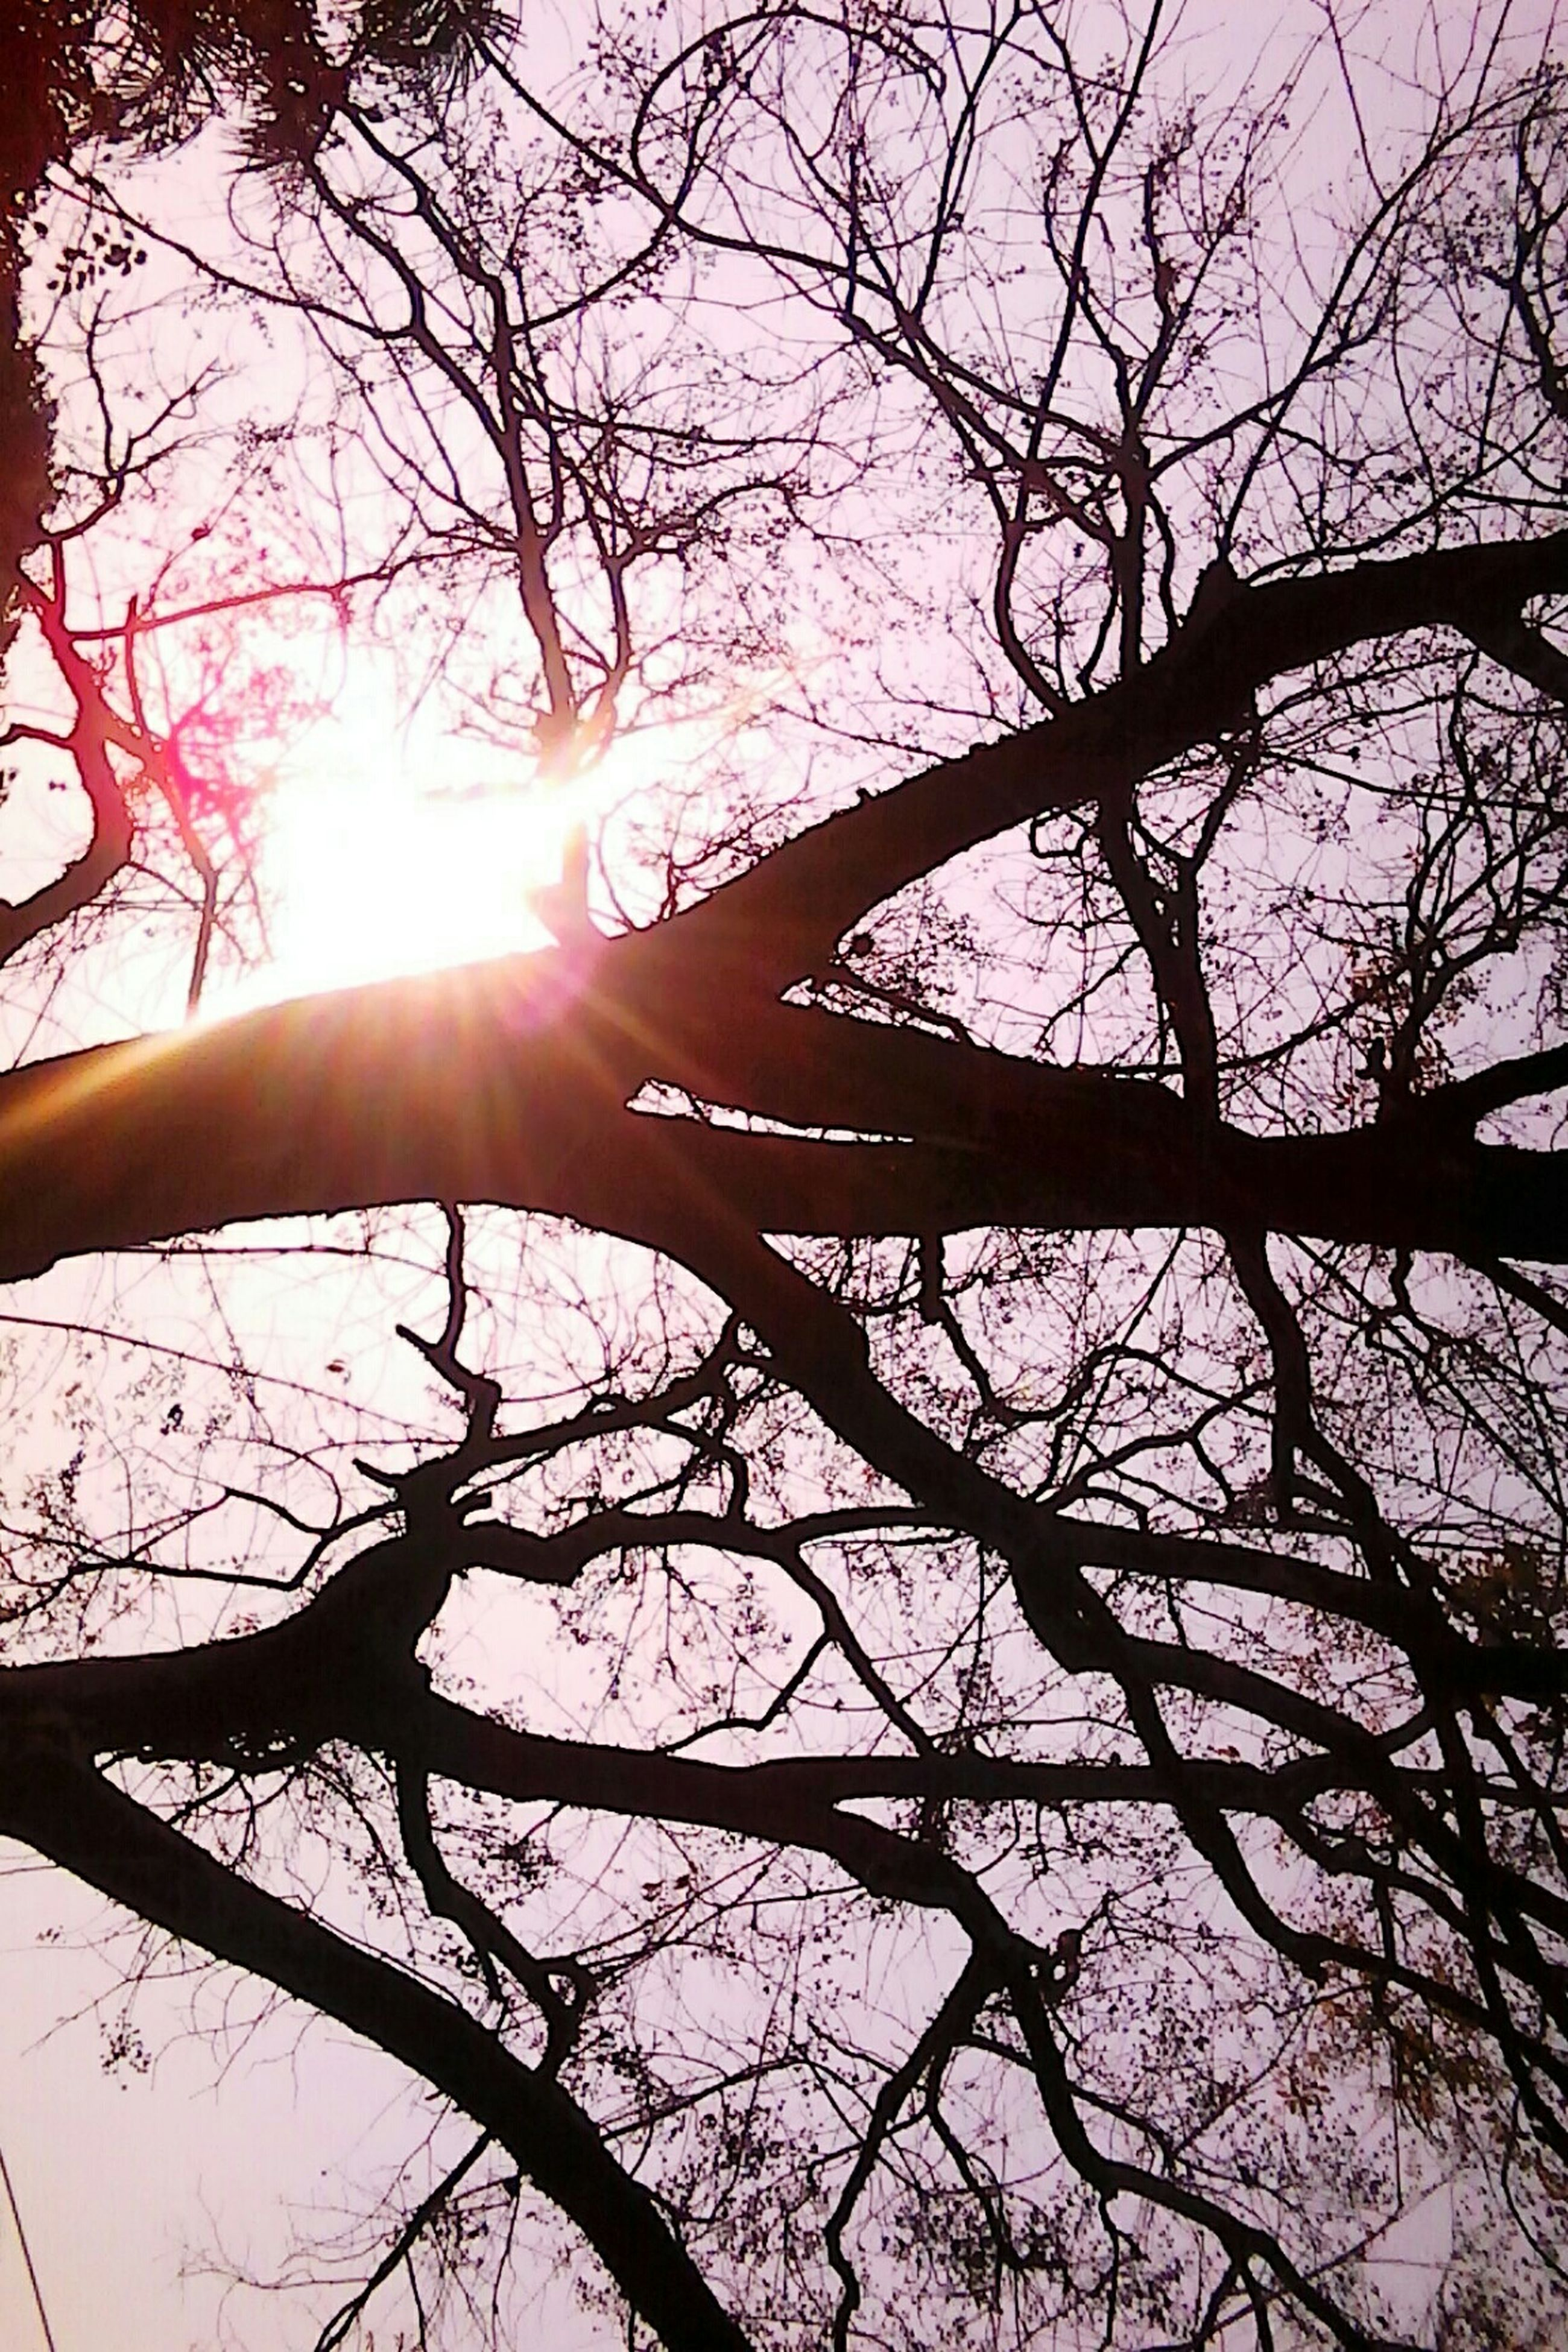 sun, tree, sunbeam, low angle view, lens flare, sunlight, branch, nature, silhouette, sky, bright, clear sky, bare tree, tranquility, beauty in nature, back lit, growth, sunny, outdoors, day